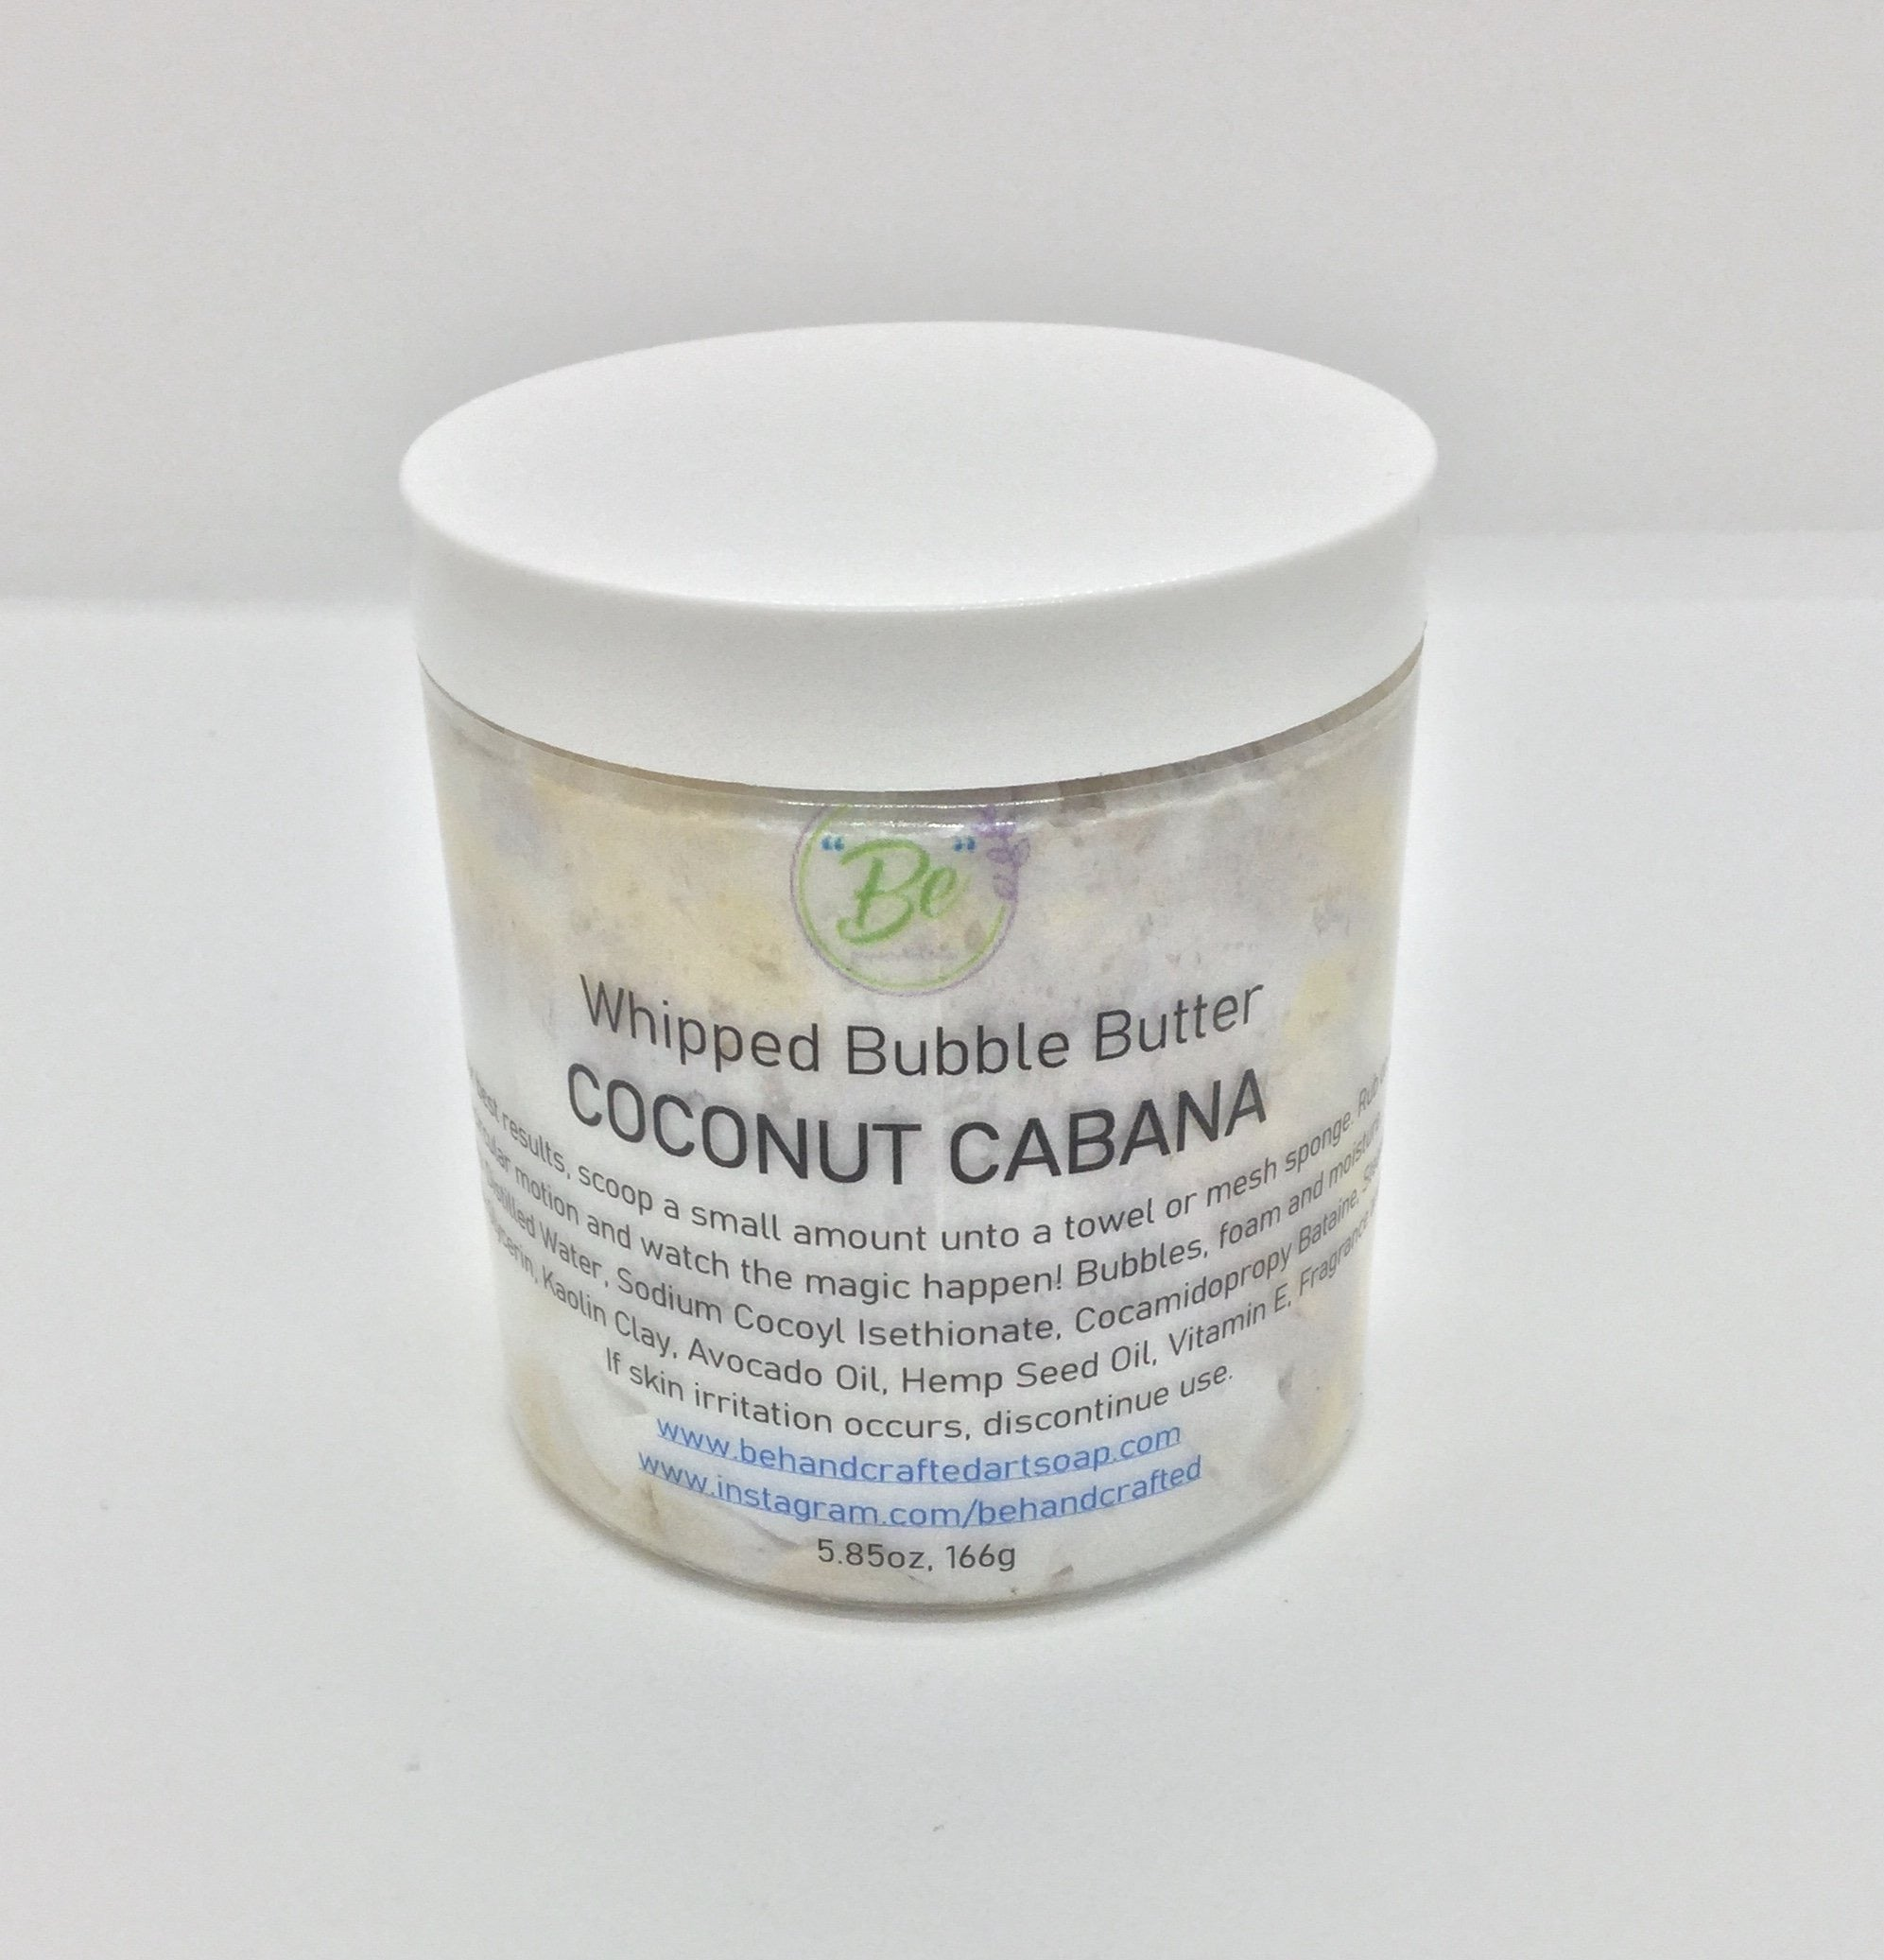 Whipped Bubble Butter - Coconut Cabana